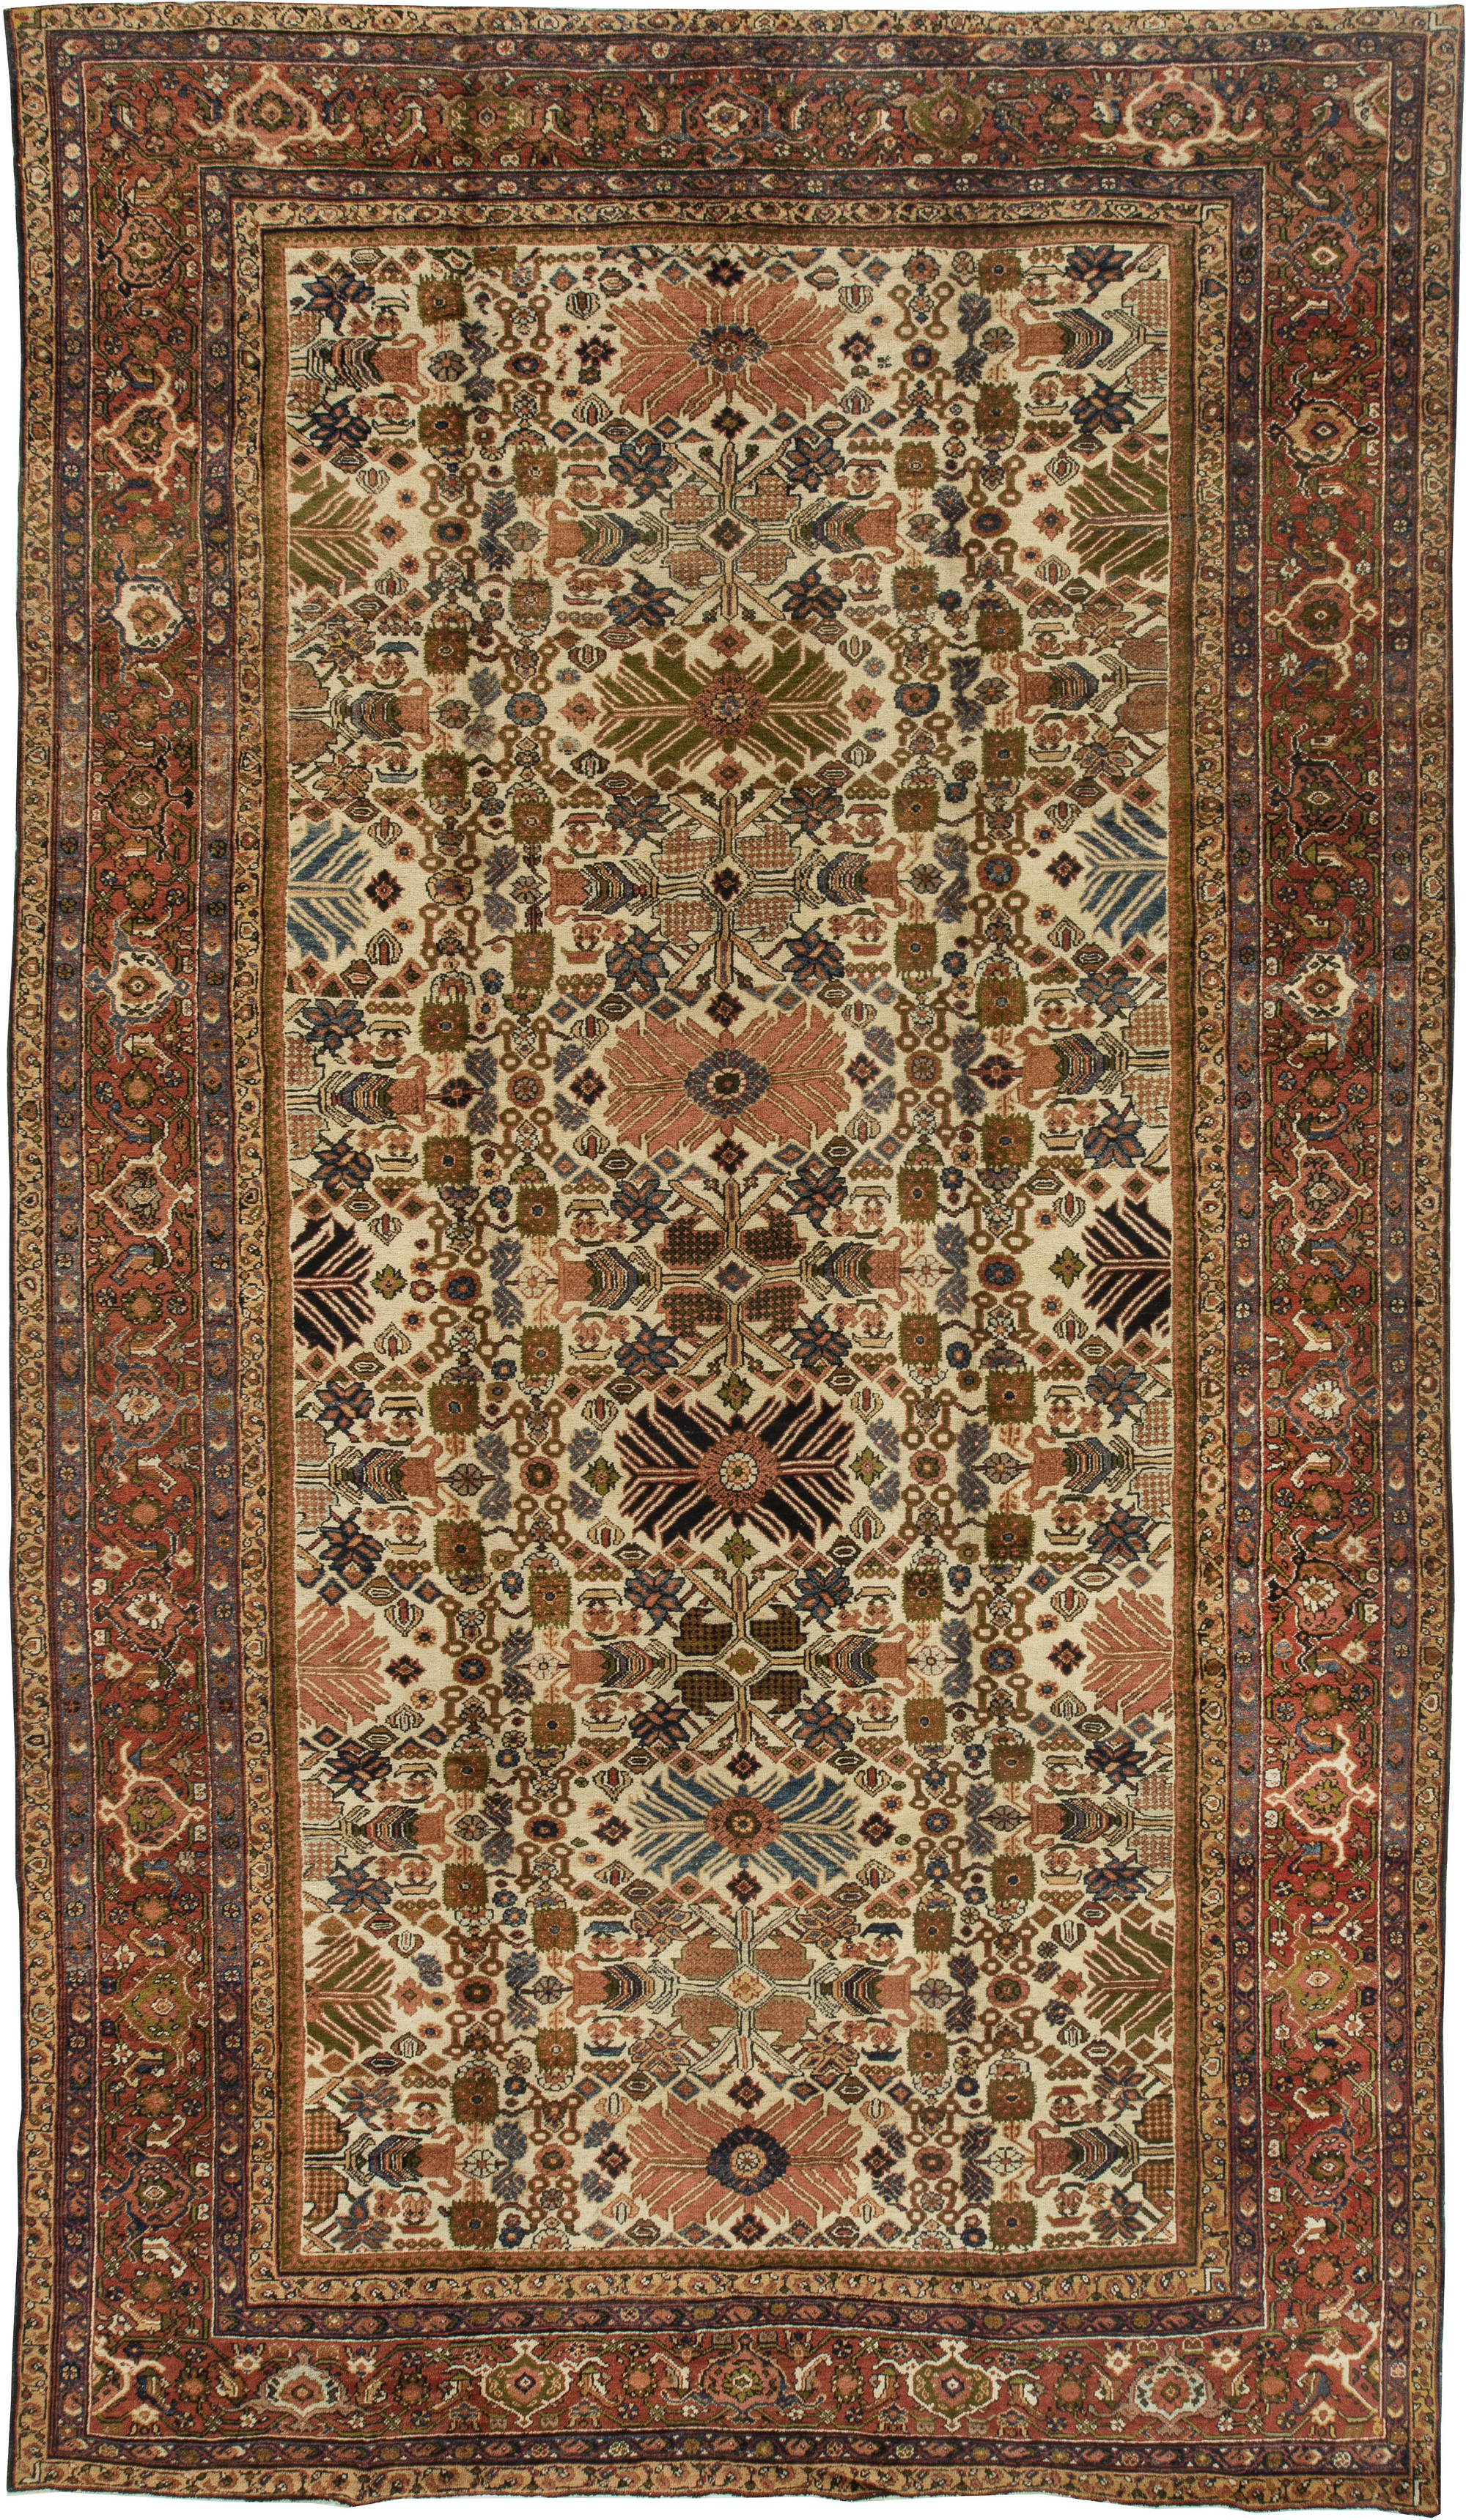 Antique Persian Rugs Antique Oriental Rugs Persian